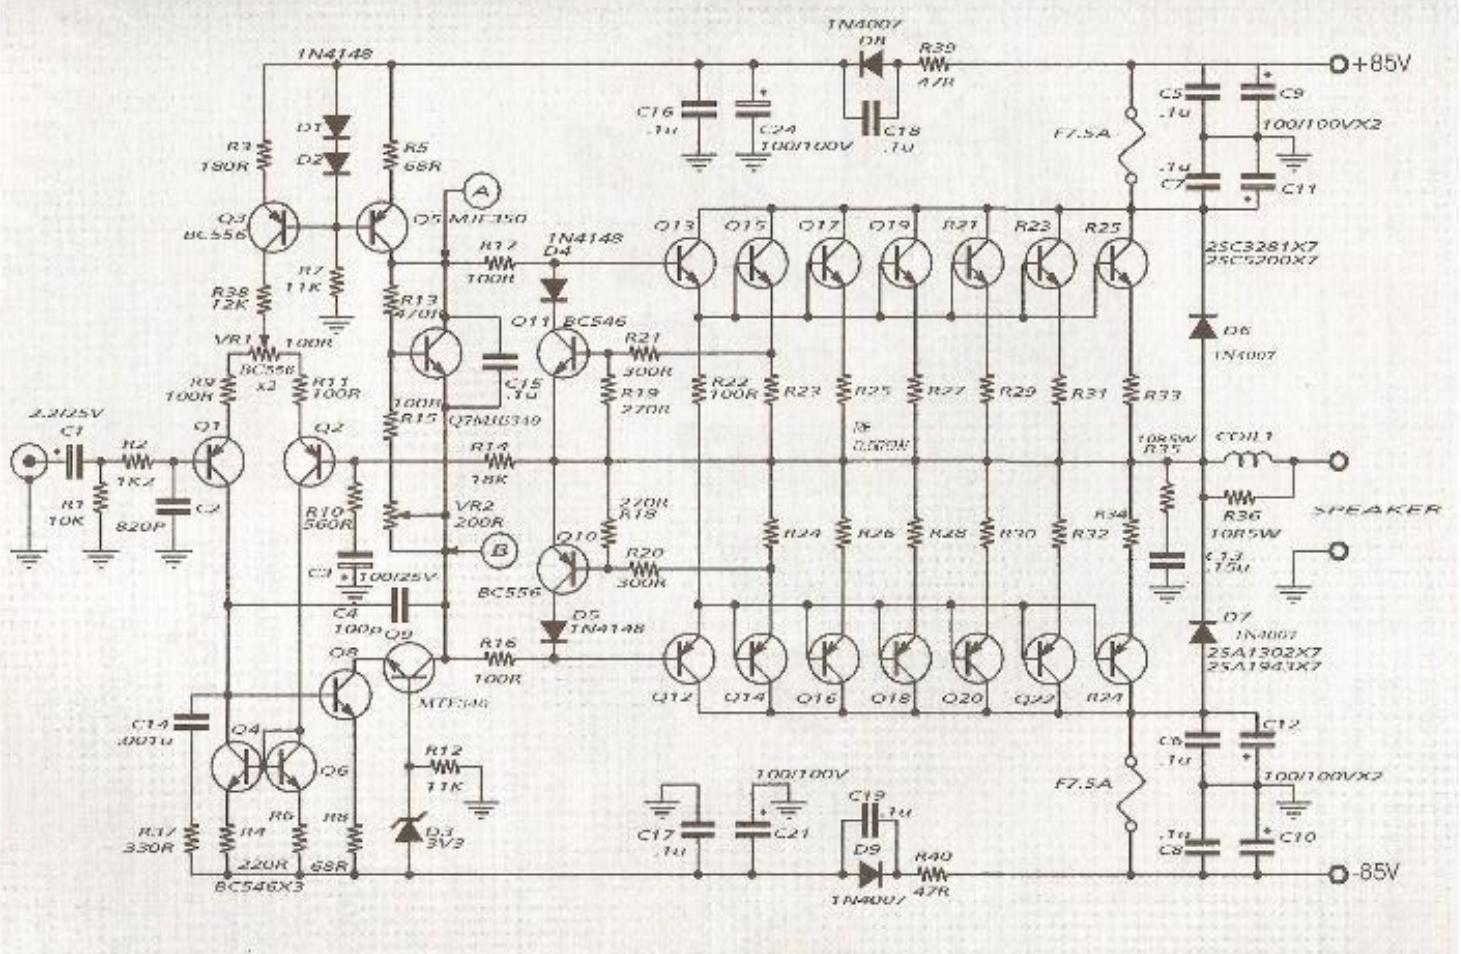 Audio Amplifier Circuit Diagram With Layout Leg Muscle 600w 2sc5200 2sa1943 And Pcb